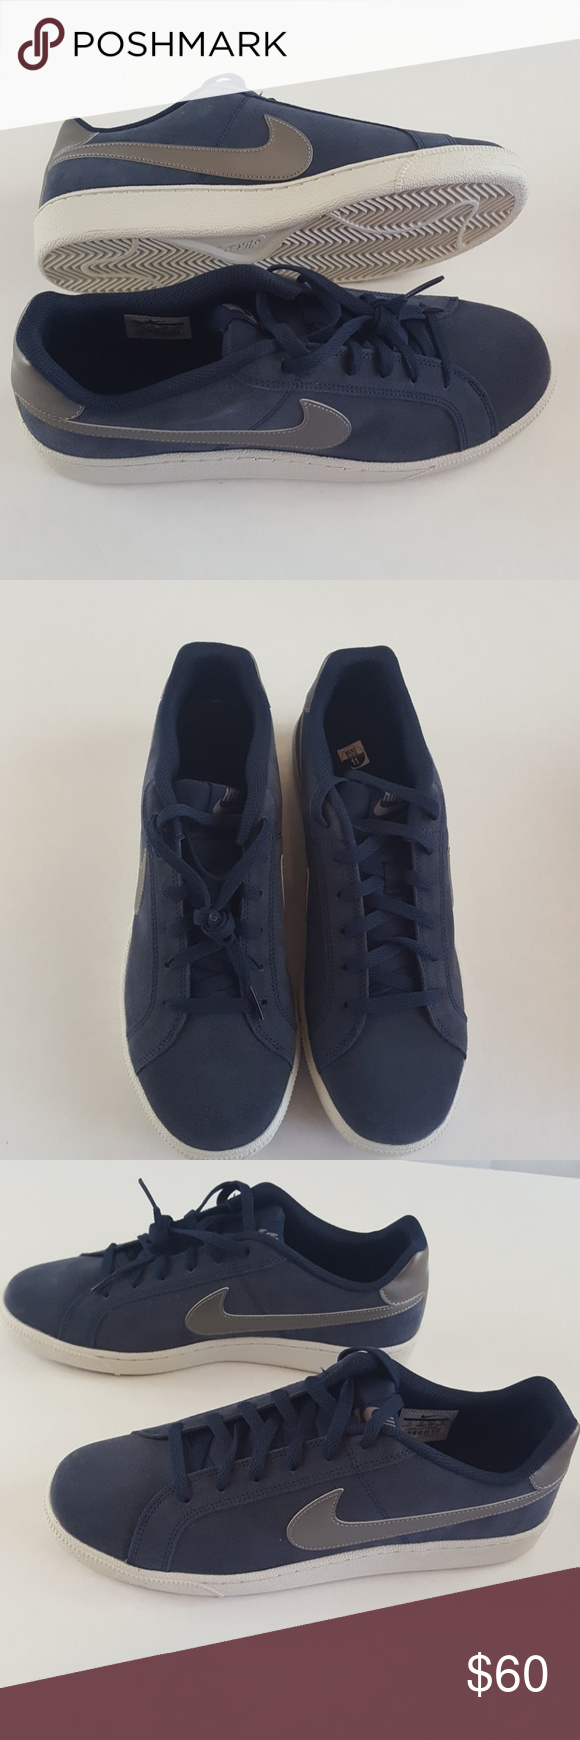 Percibir Irradiar Resonar  Mens Nike Court Royale Suede Blue Shoes 819802403 | Blue shoes, Nike men,  Fashion design